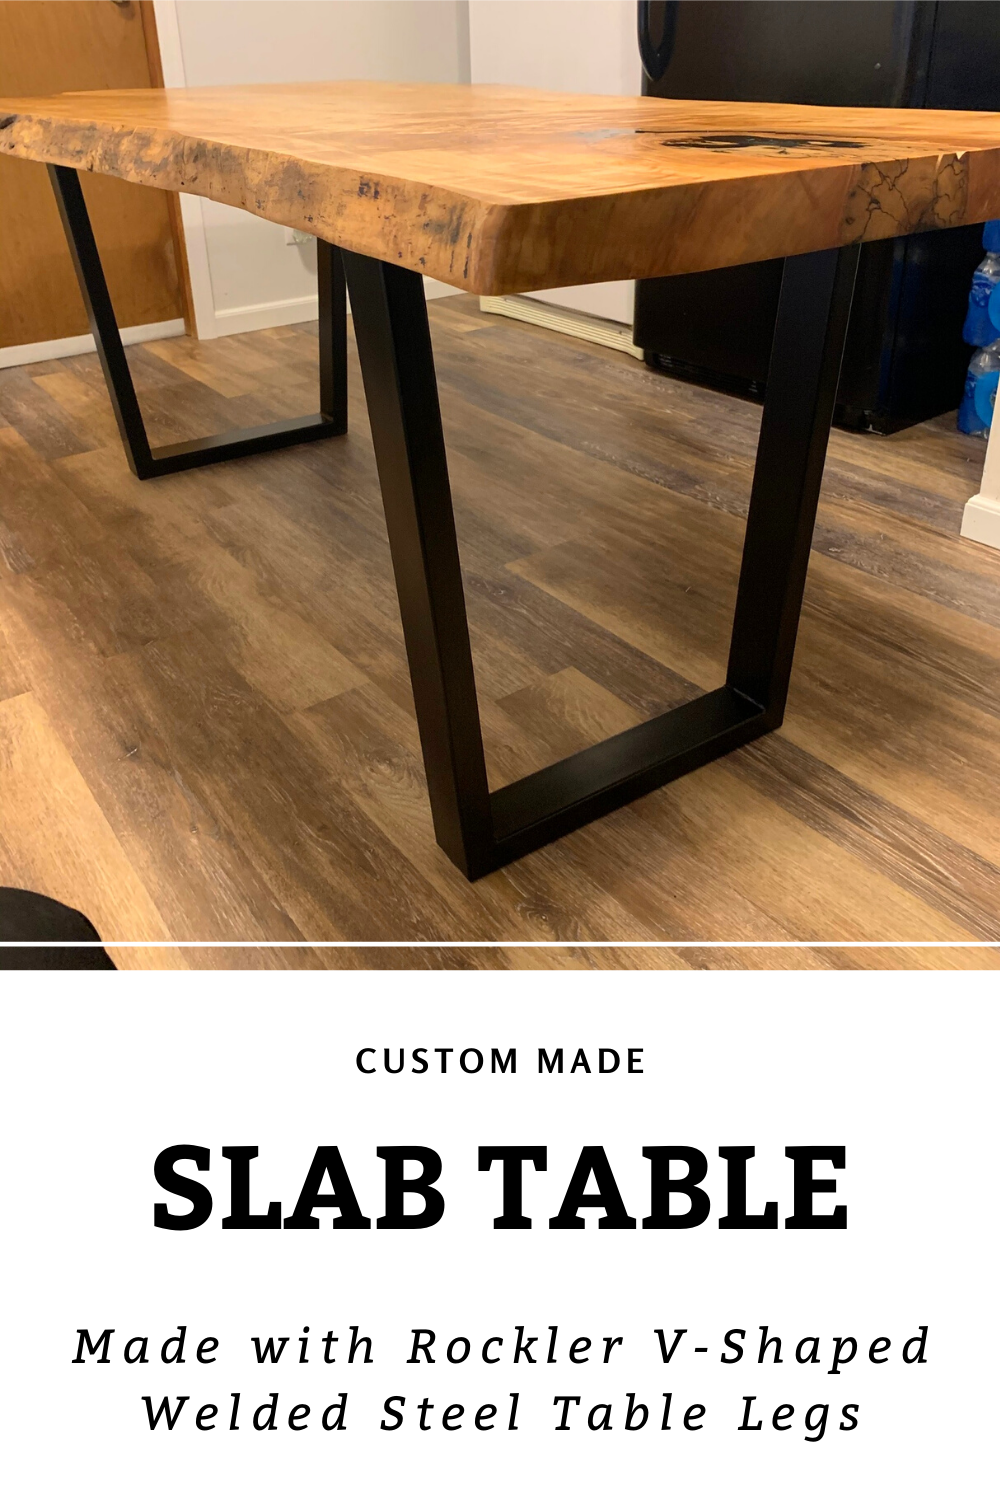 Custom Slab Table In 2020 Steel Table Legs Slab Table Steel Table